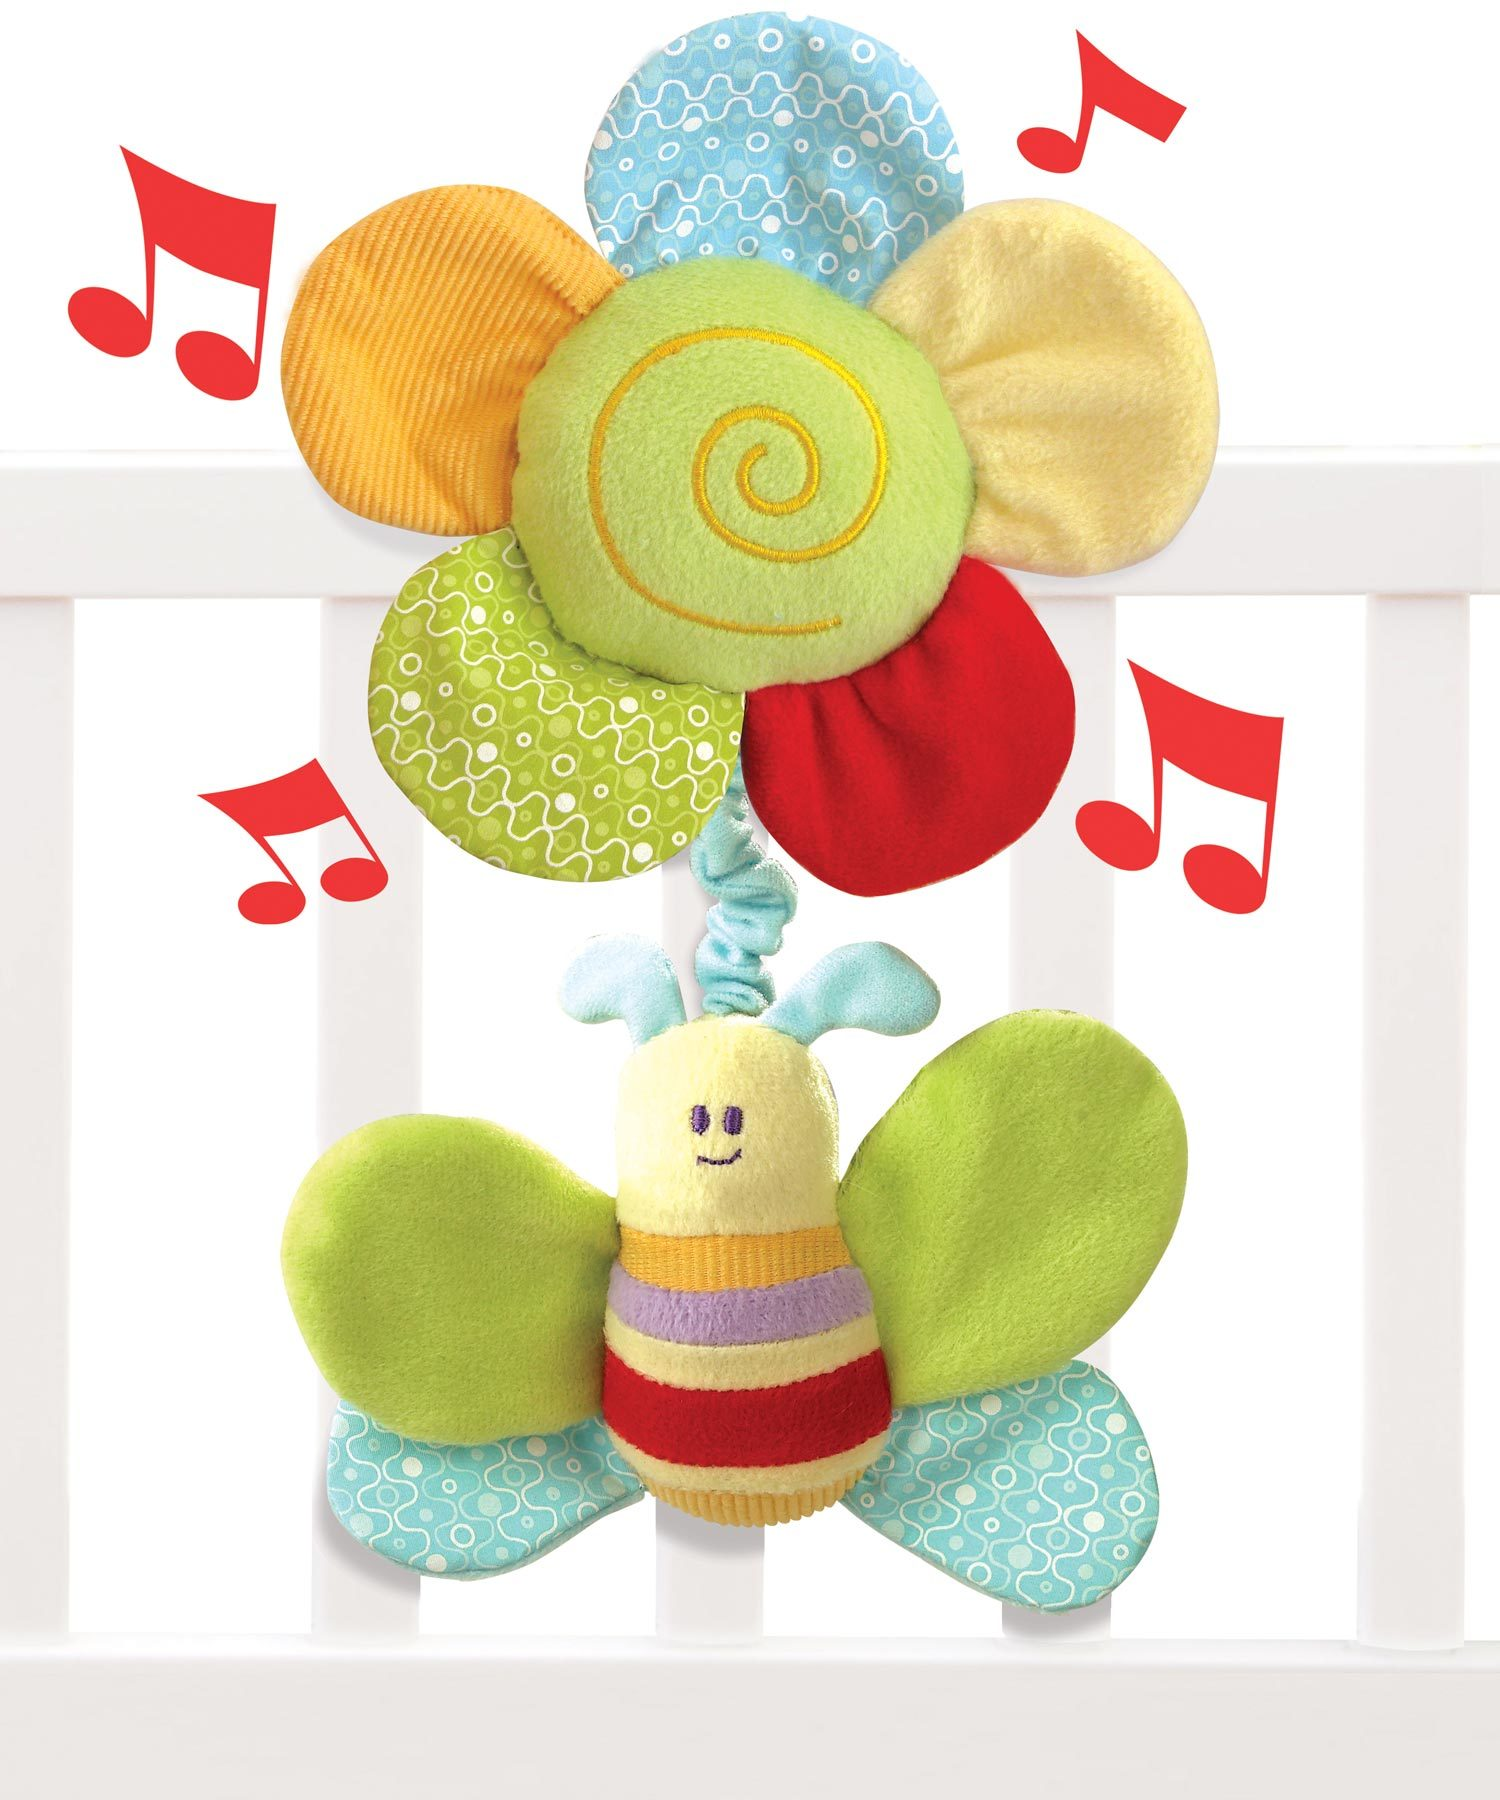 LB3006-Playmat-Musical-Toy.jpg